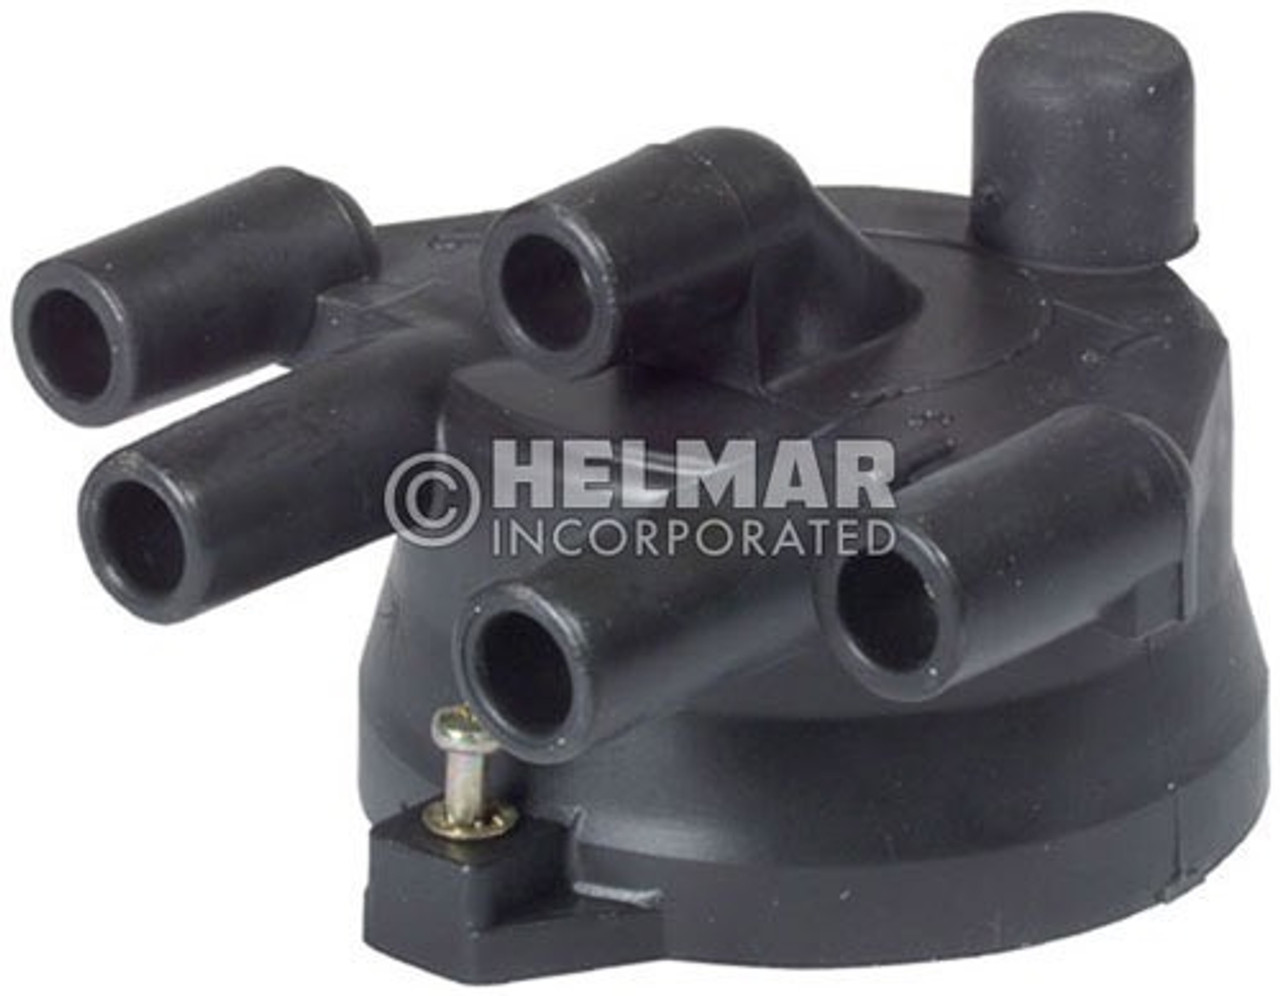 9013568-02 Yale Distributor Cap for D5 Engines, Type DC-05